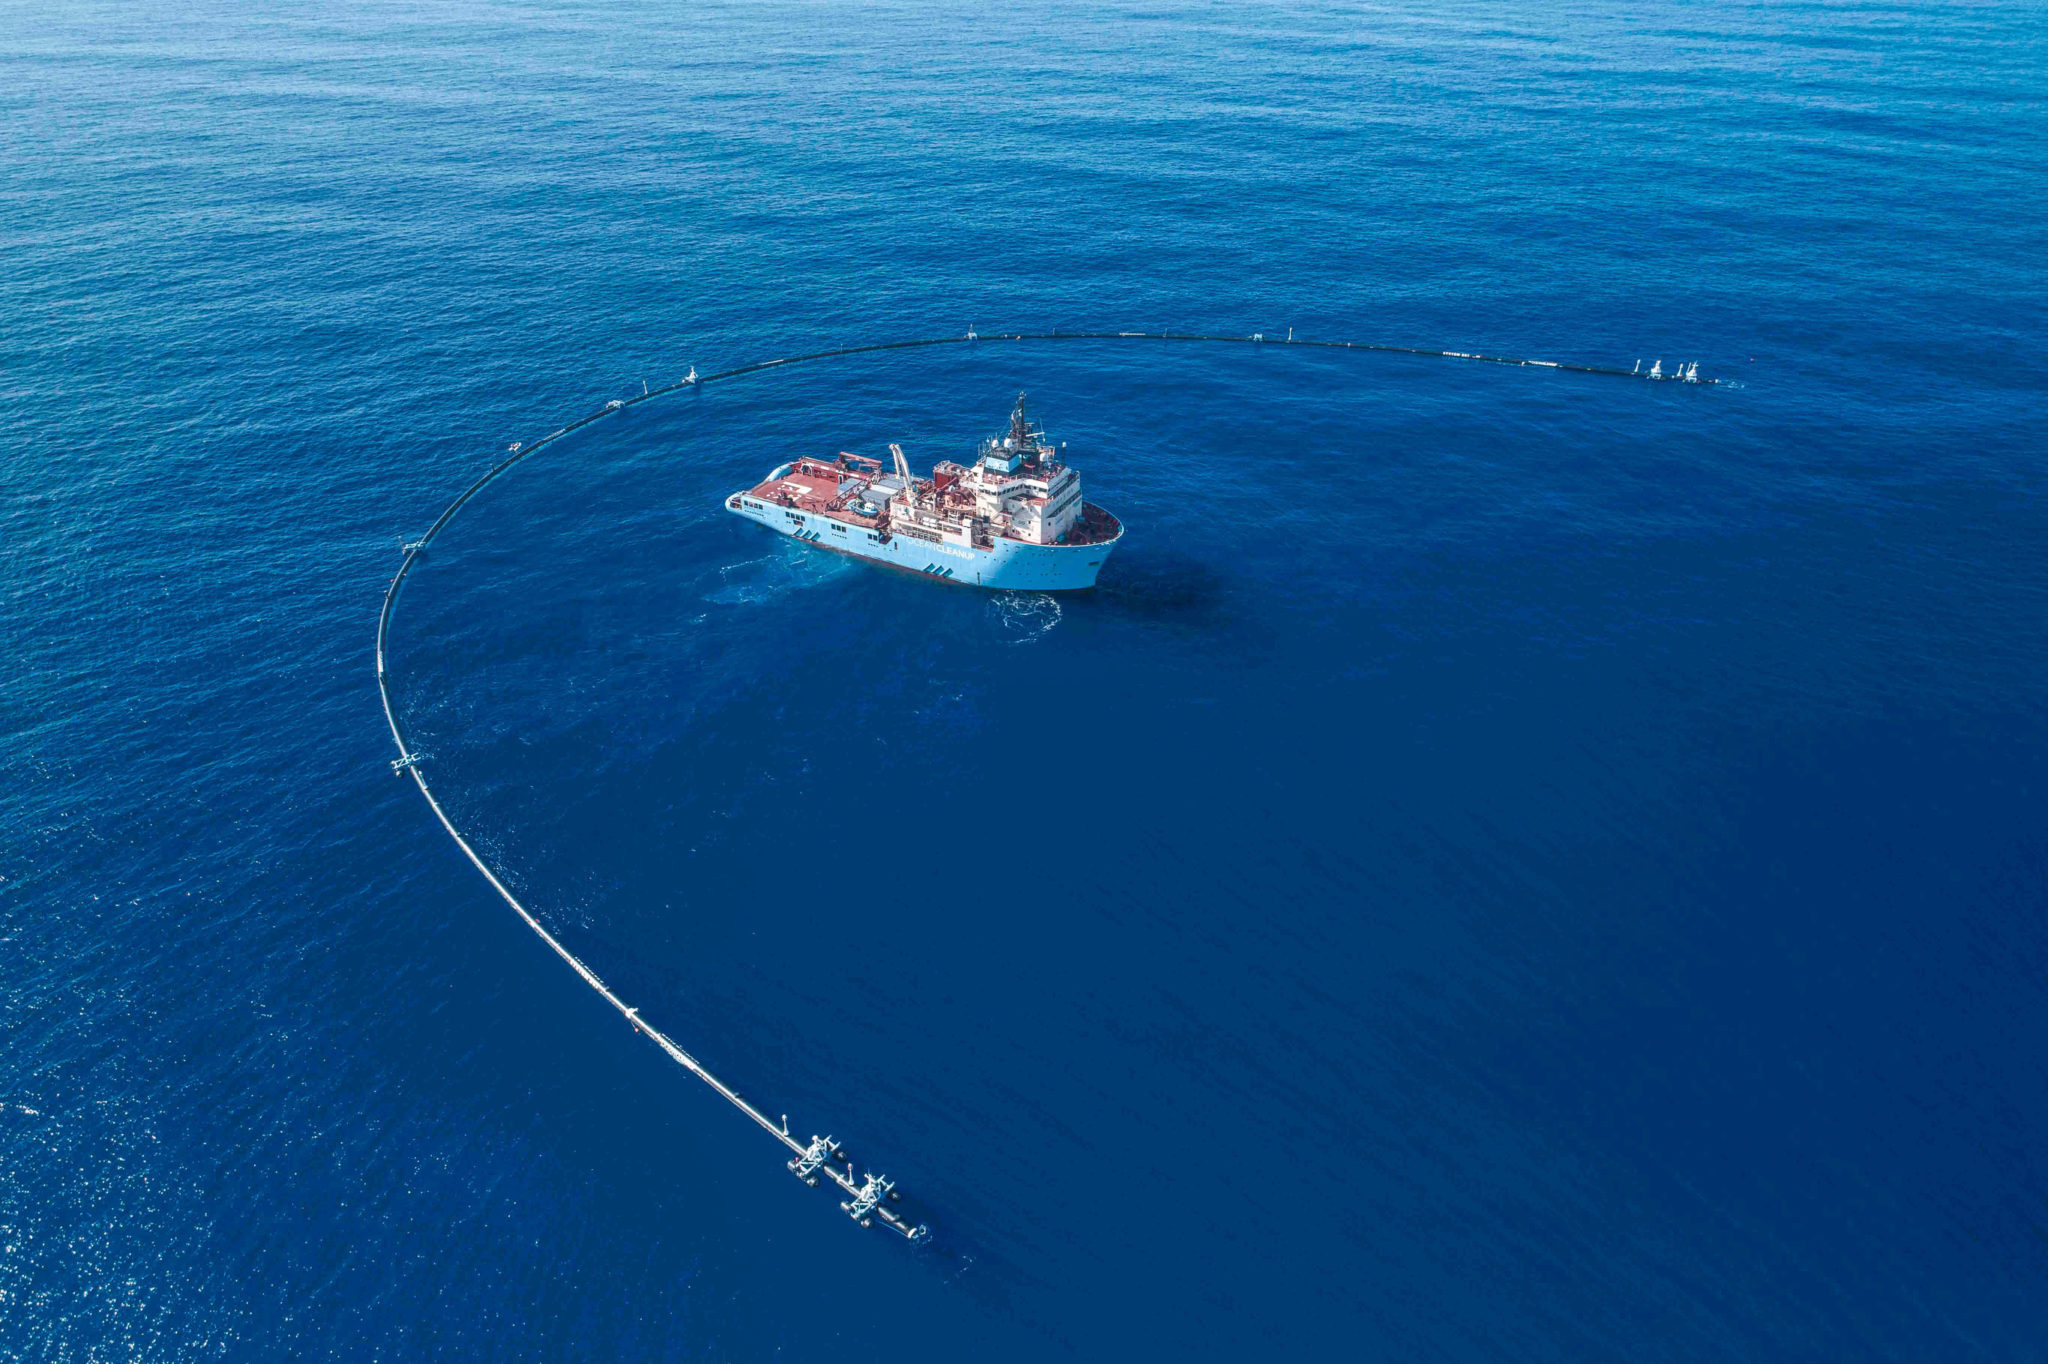 FIRST UP Satcom | Thales InFlyt eyes global Ka-band network • Iridium to connect Ocean Cleanup effort • SES opens Isle of Man teleport